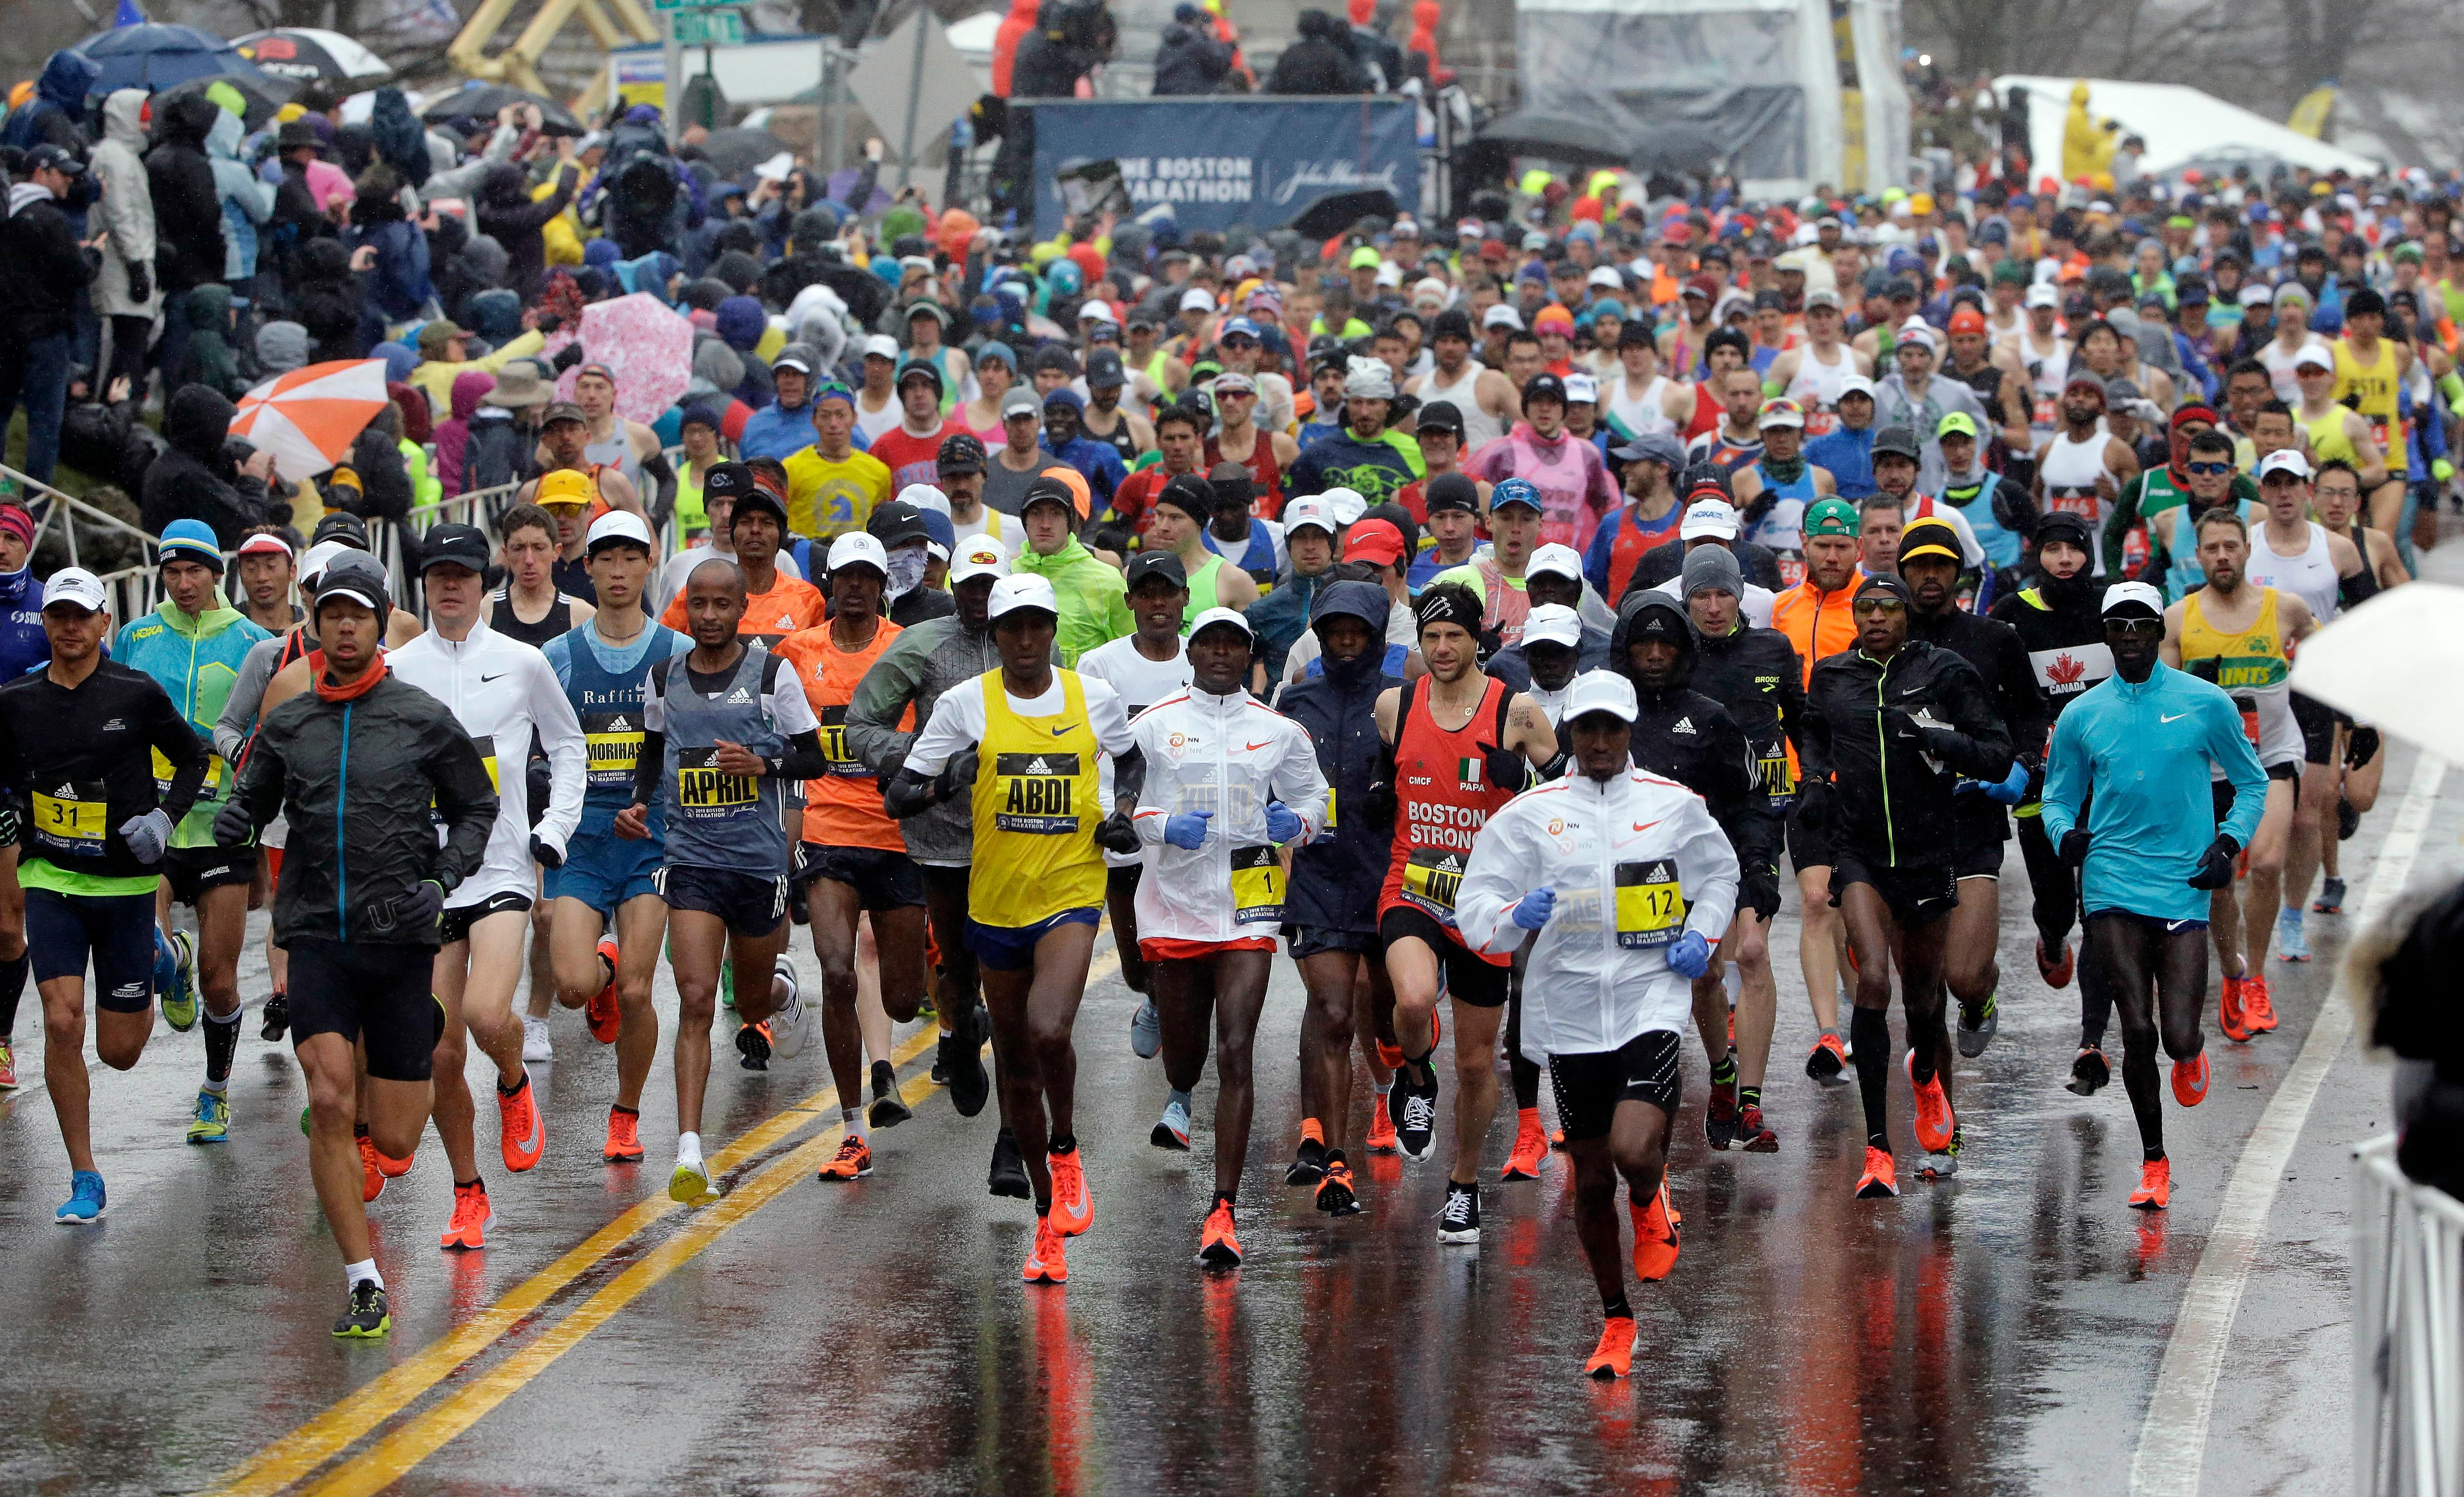 The field of men's elite runners leave the starting line in the 122nd Boston Marathon on Monday, April 16, 2018, in Hopkinton, Mass. (AP Photo/Steven Senne)